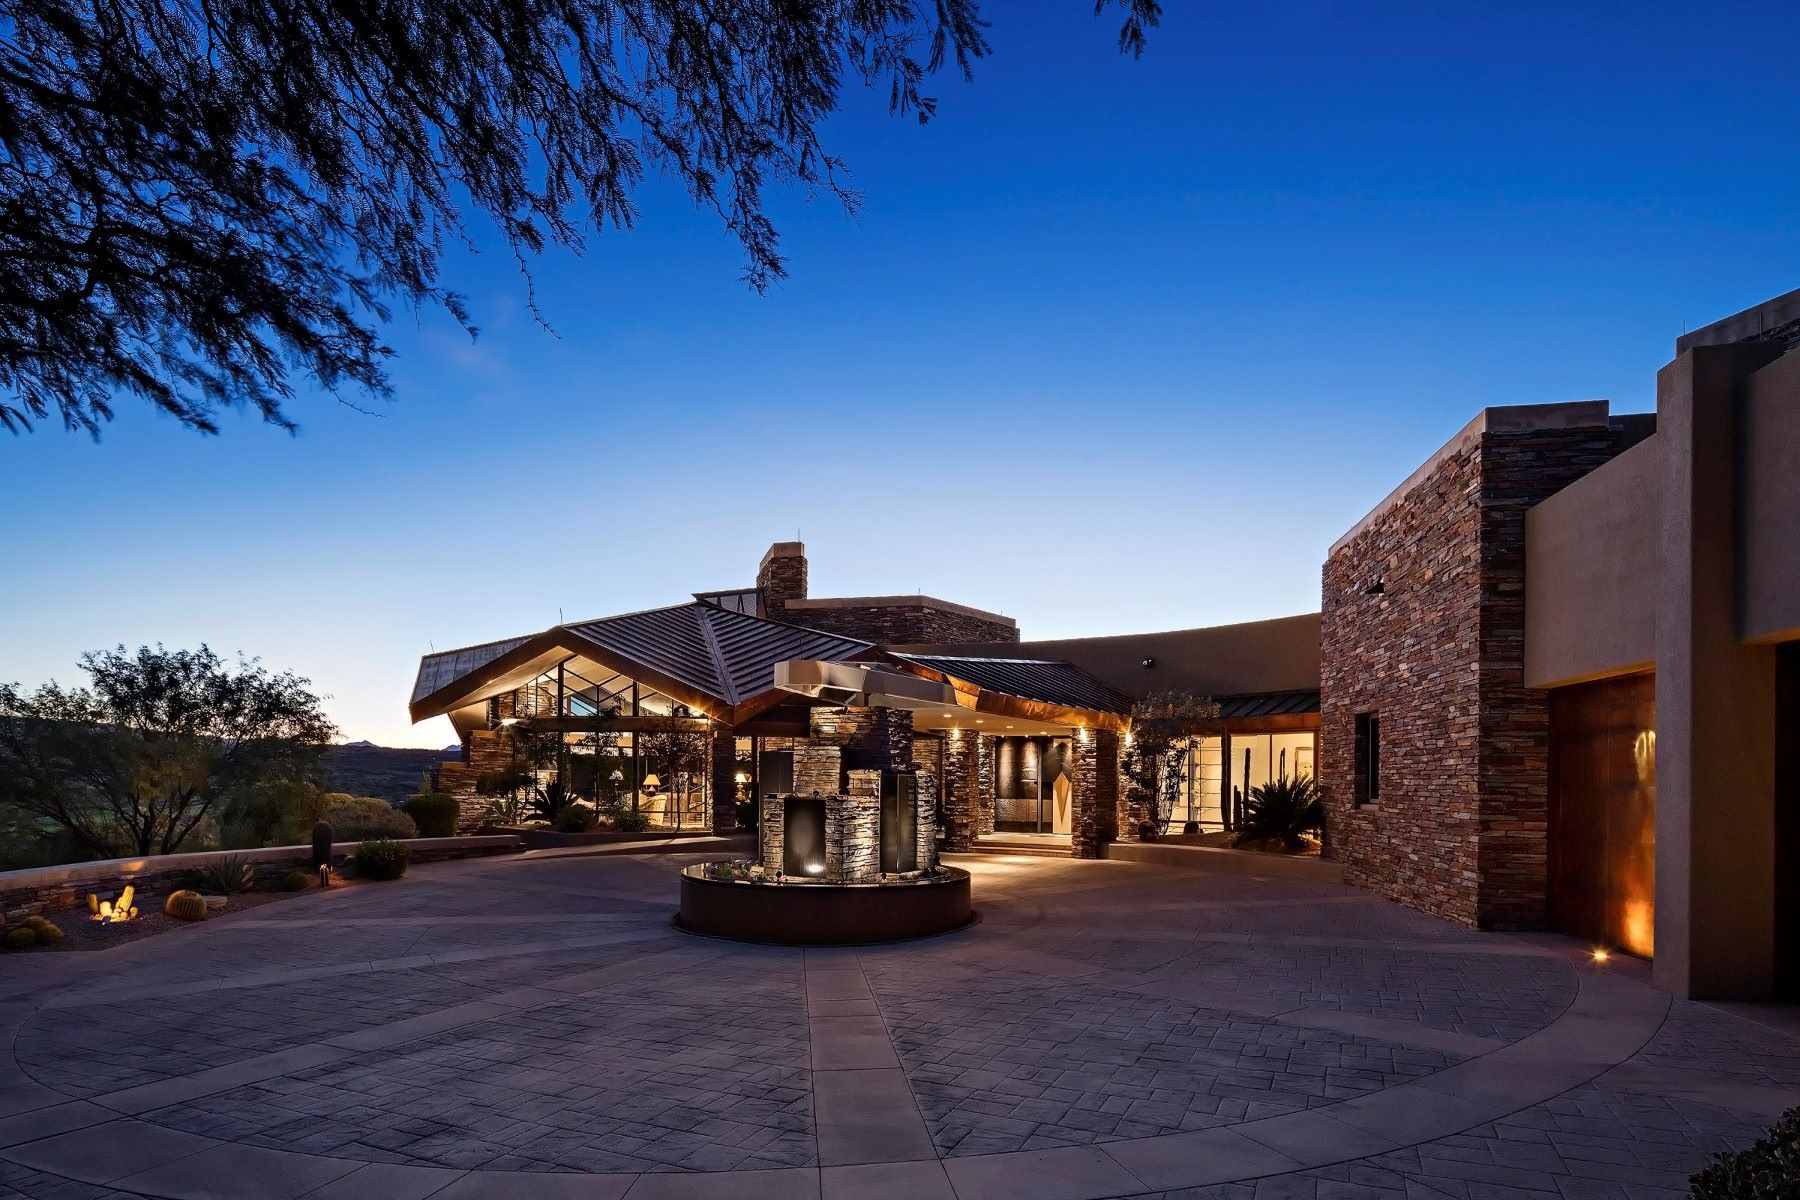 独户住宅 为 销售 在 Timeless contemporary estate in Desert Mountain 9625 E Aw Tillinghast Rd 斯科茨代尔, 亚利桑那州 85262 美国